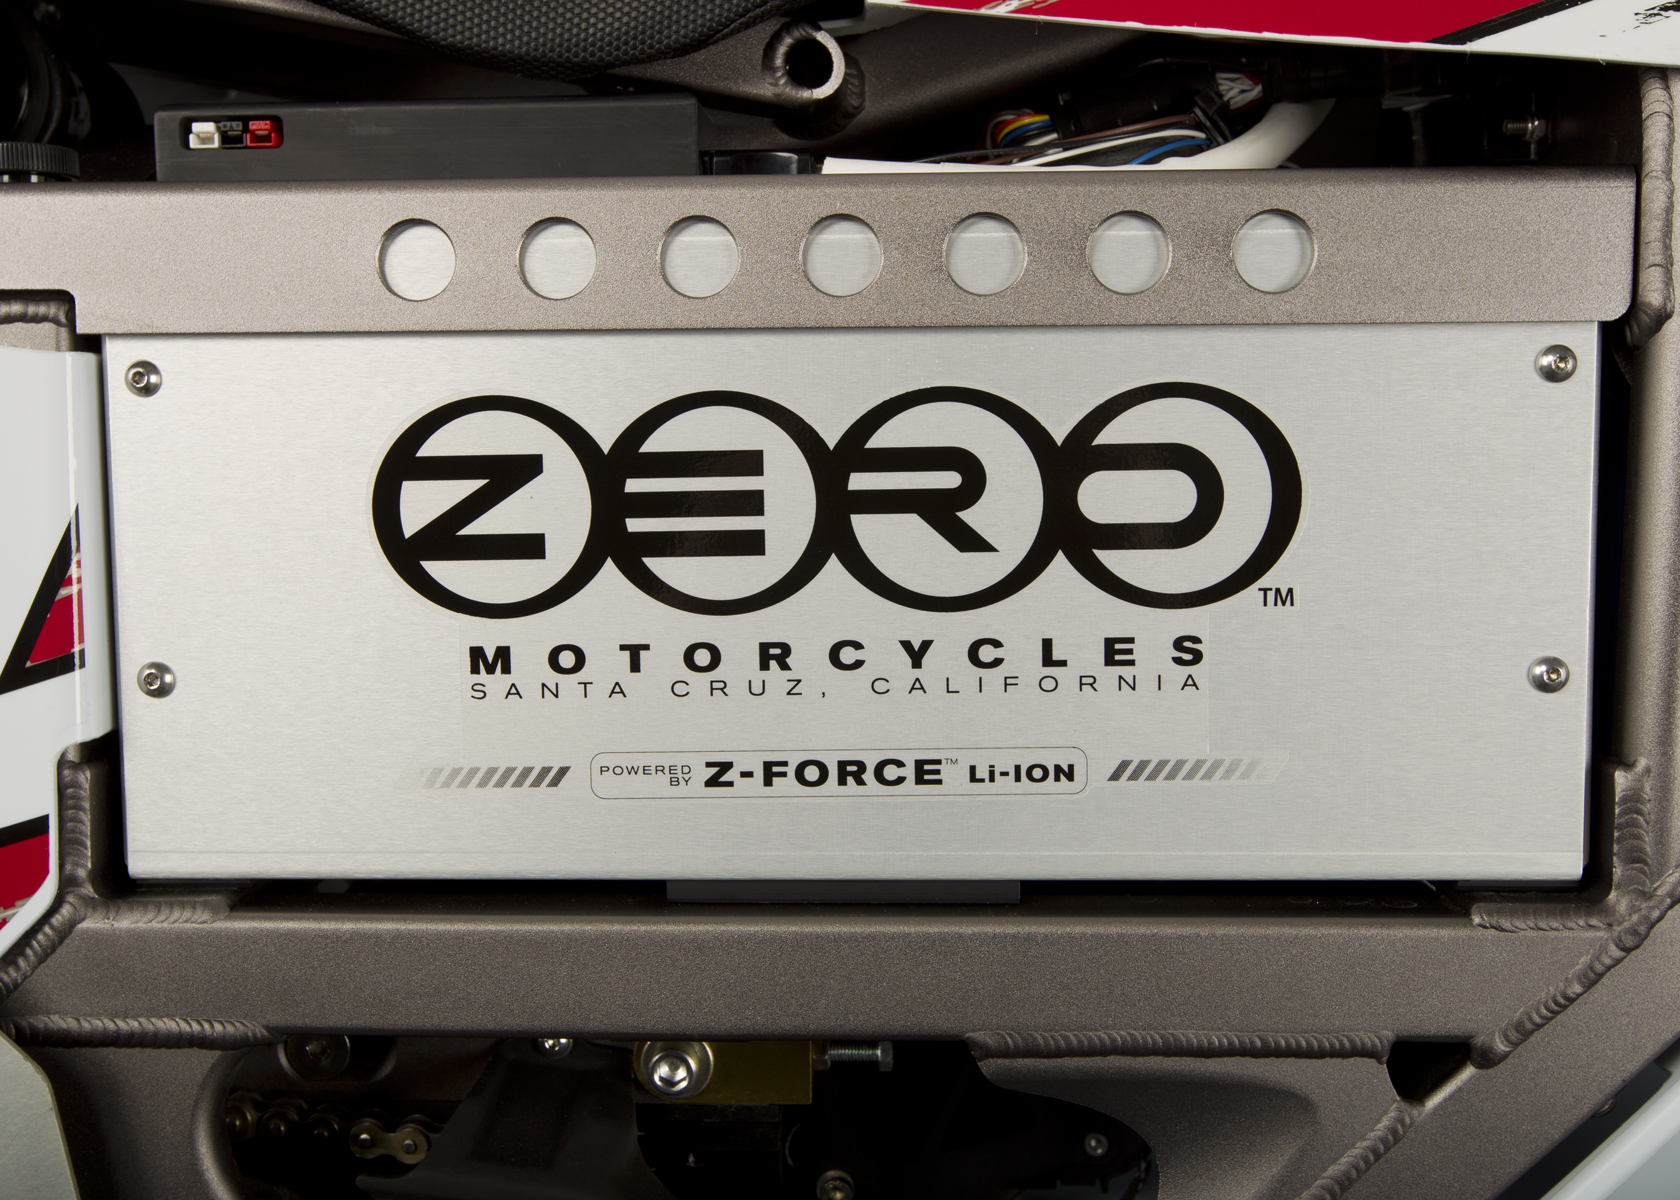 2011 Zero MX Electric Motorcycle: Battery